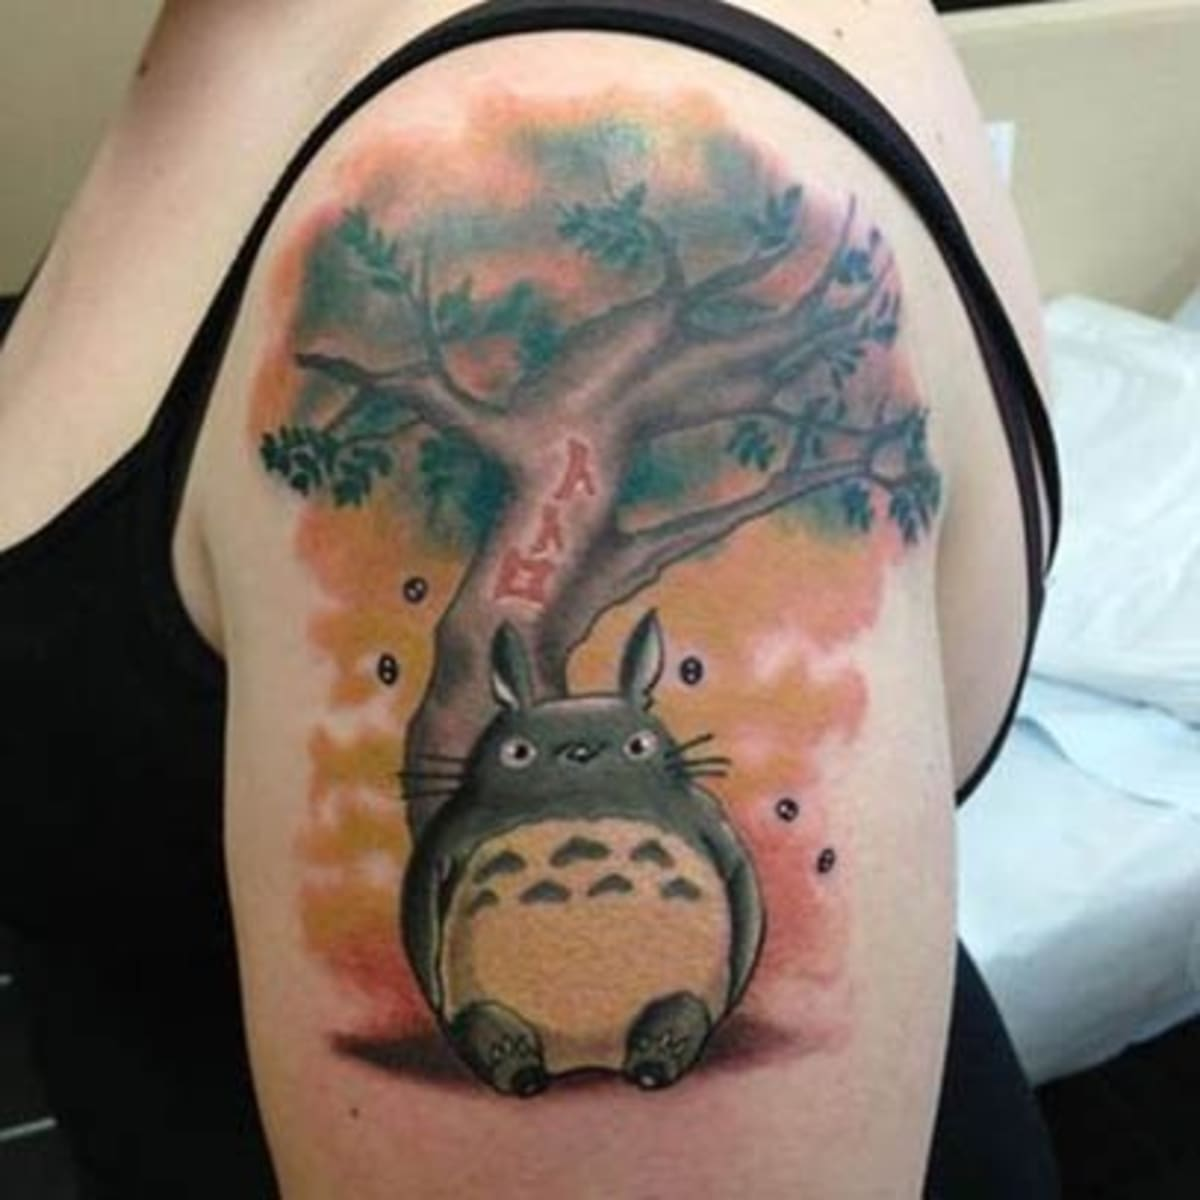 Tattoos Inspired By Hayao Miyazaki Tattoo Ideas Artists And Models